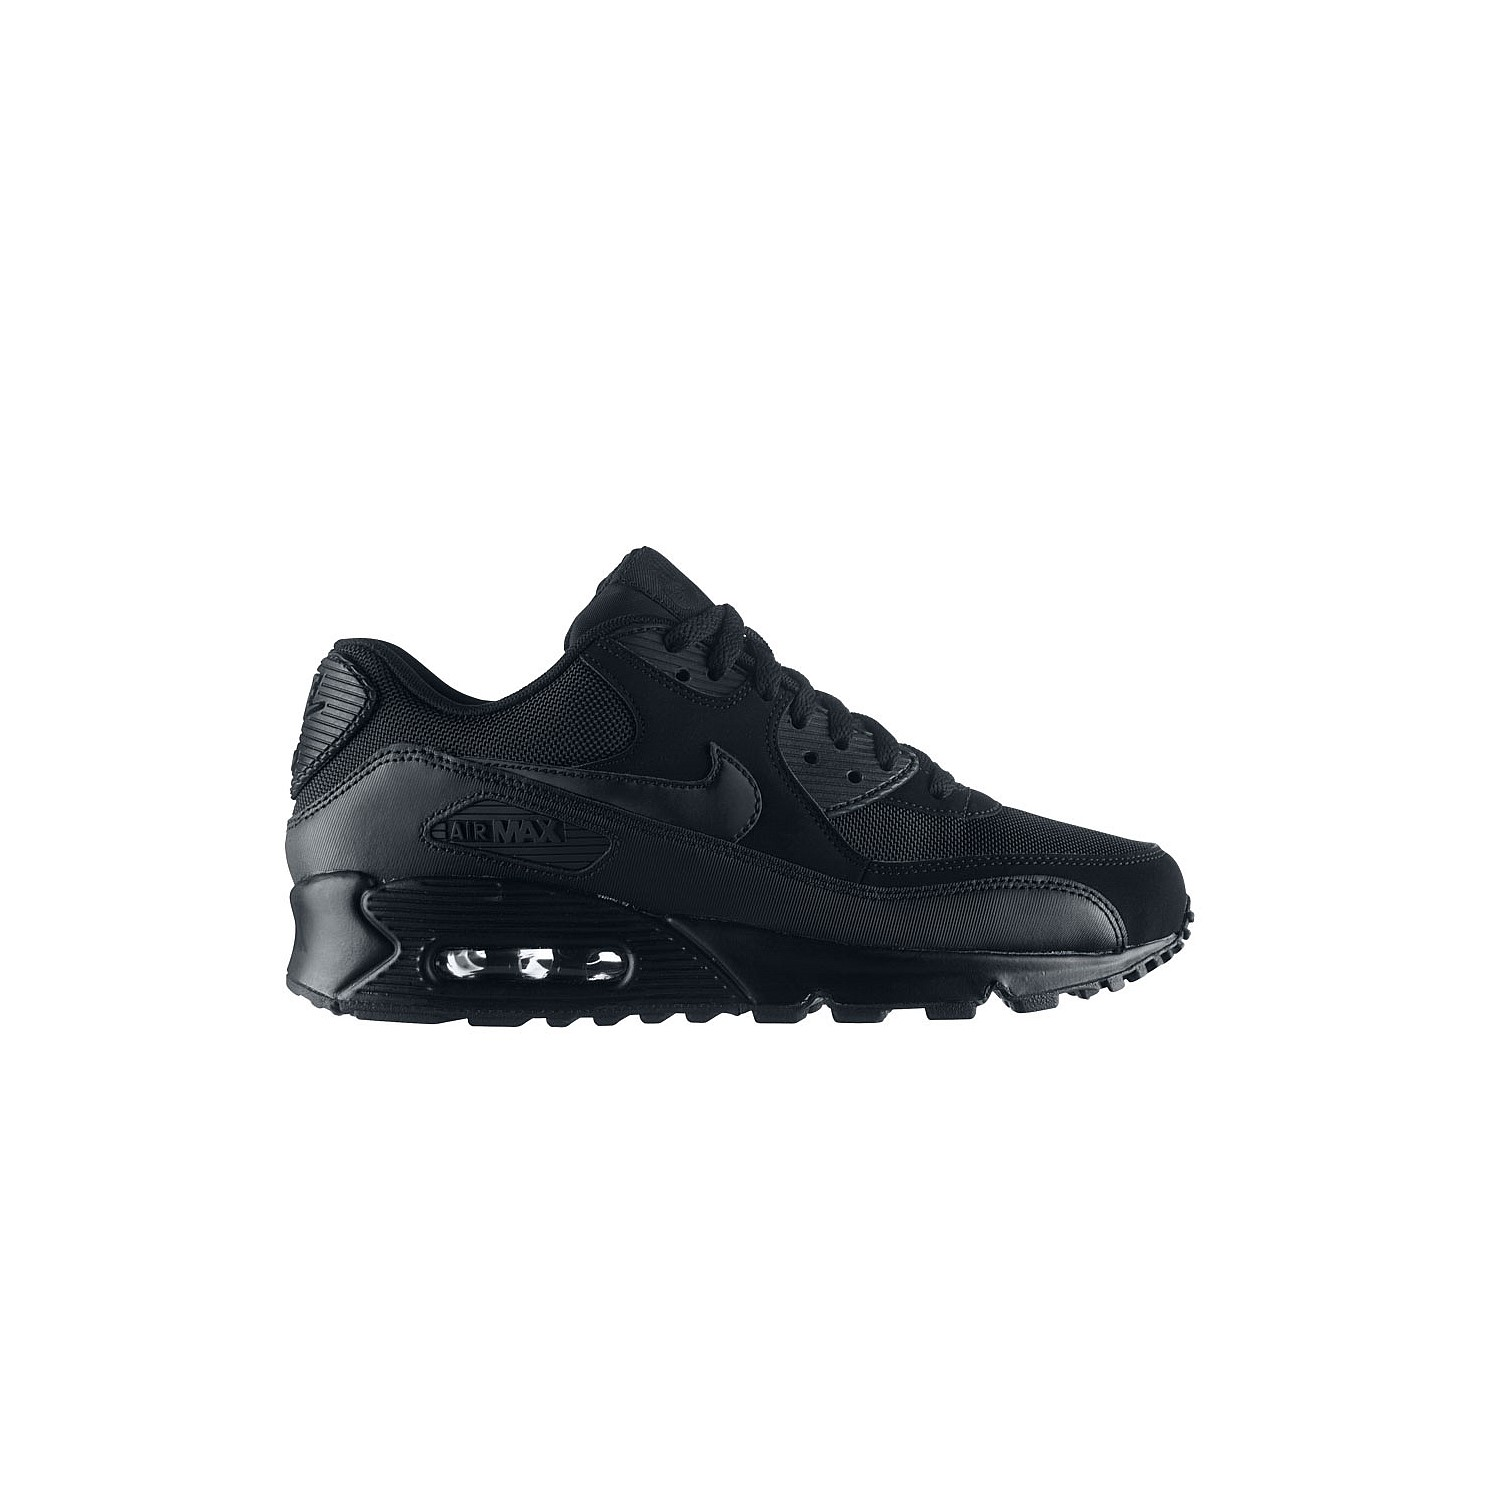 new concept dac6e 79ac7 Men s Footwear   Men s Lifestyle and Training Shoes Online   Stirling  Sports - Air Max  90 Essential Mens